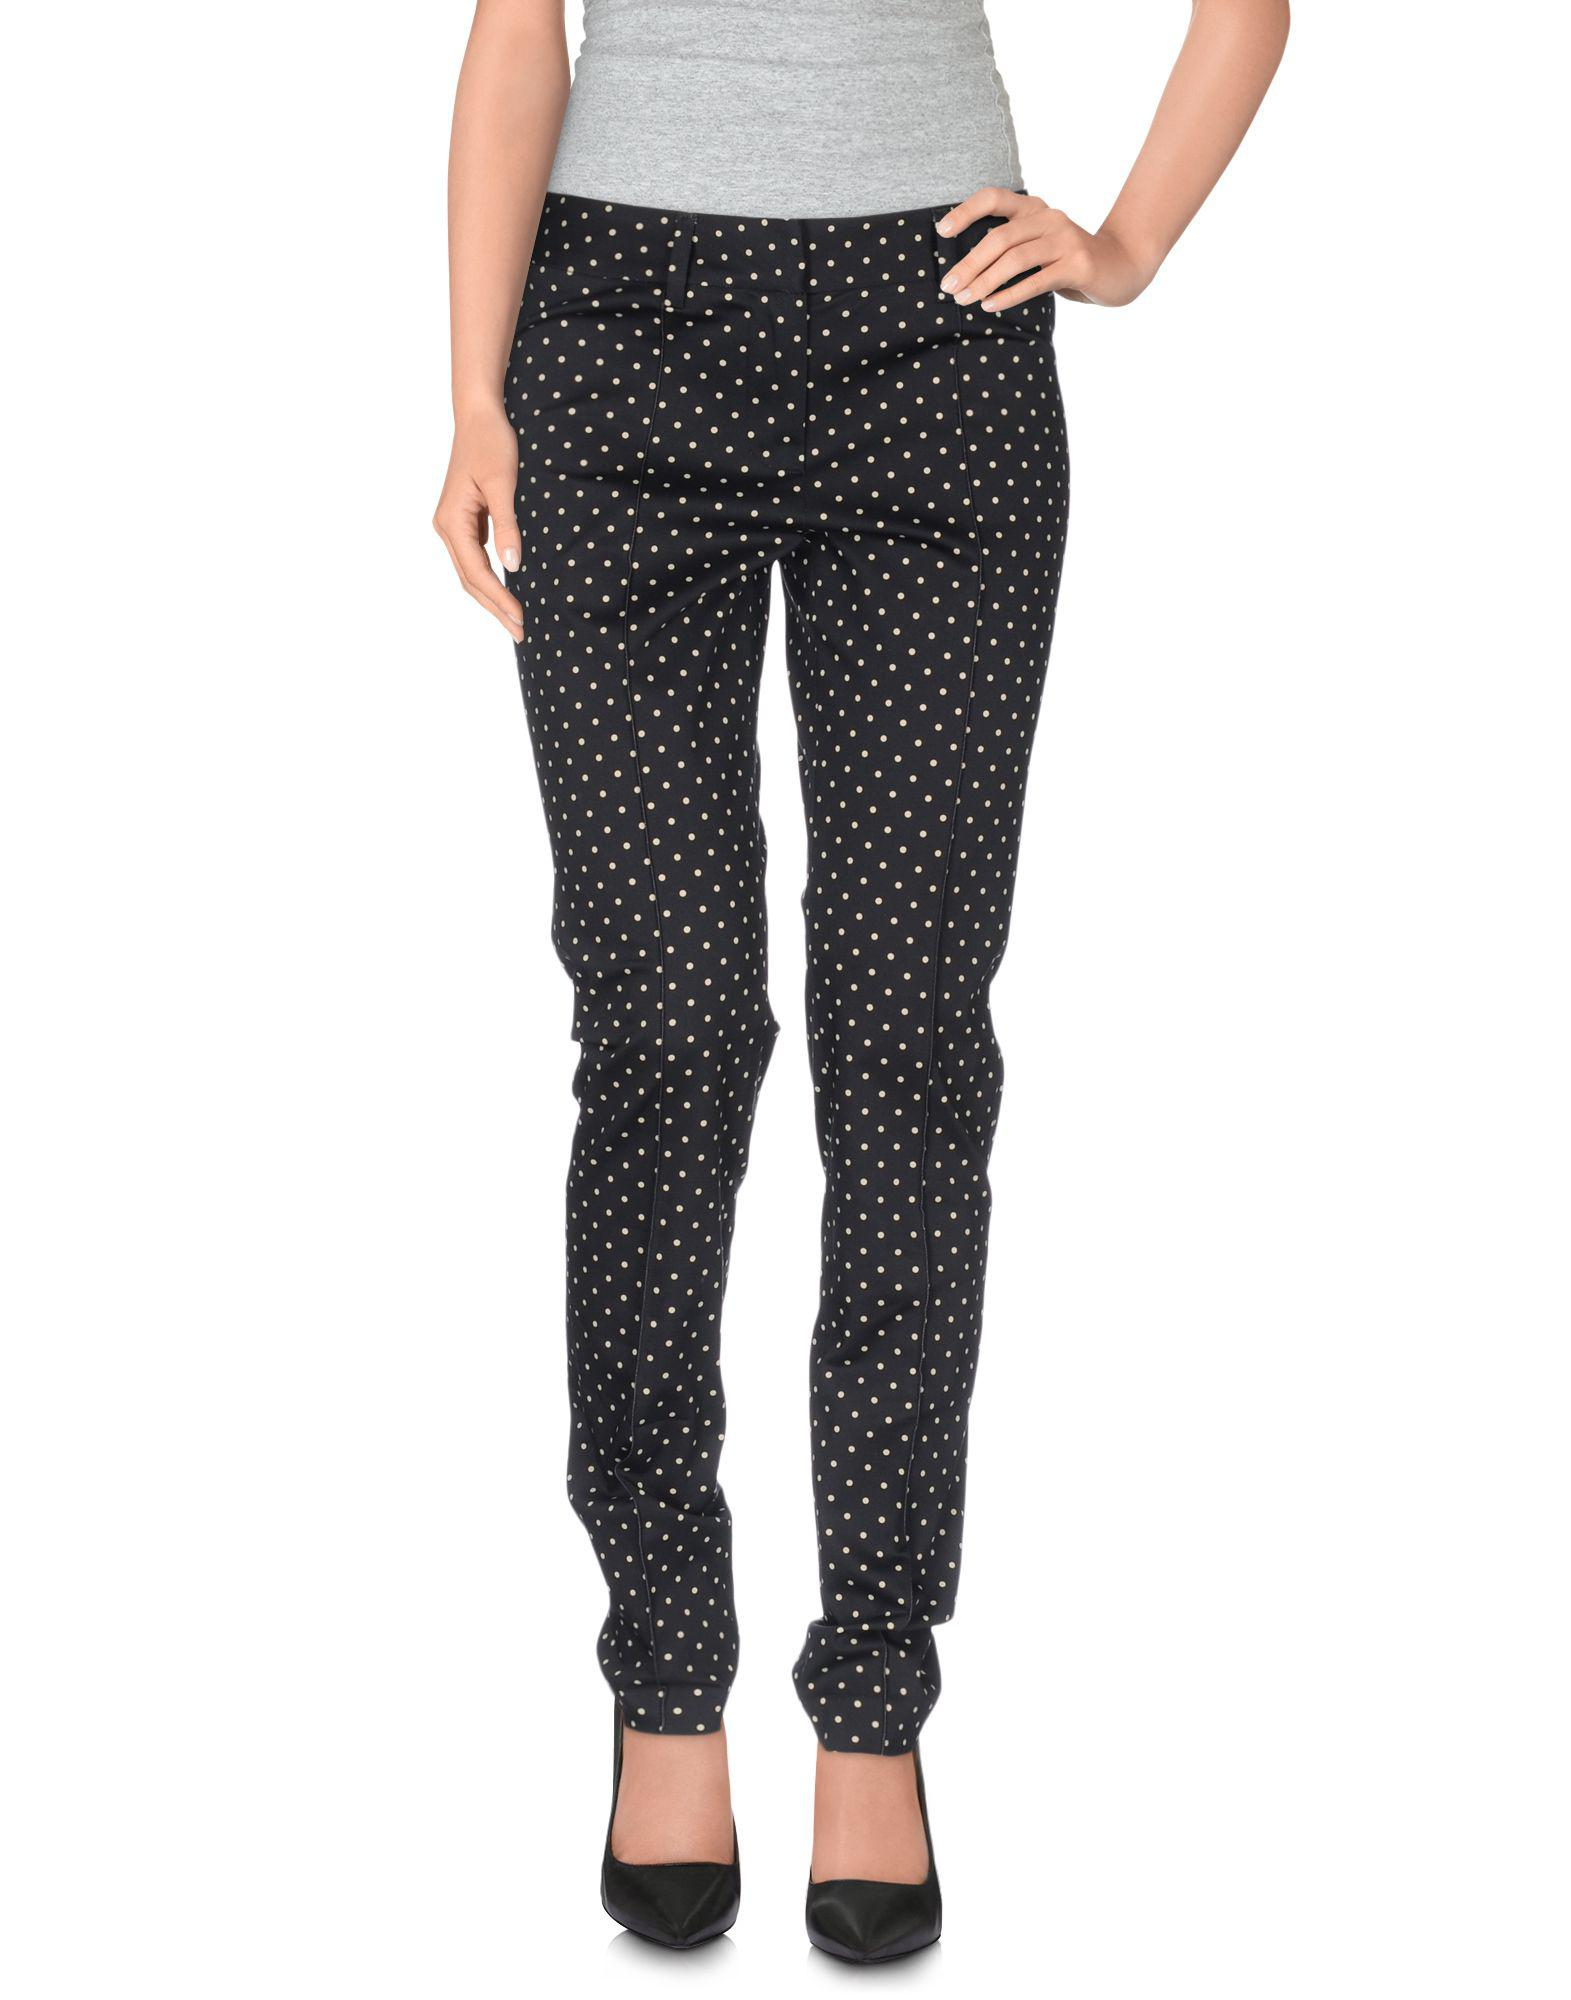 TROUSERS - Casual trousers Alberto Biani Buy Cheap Affordable Shop Sale Low Shipping Fee Sale Store 1Cy5UX